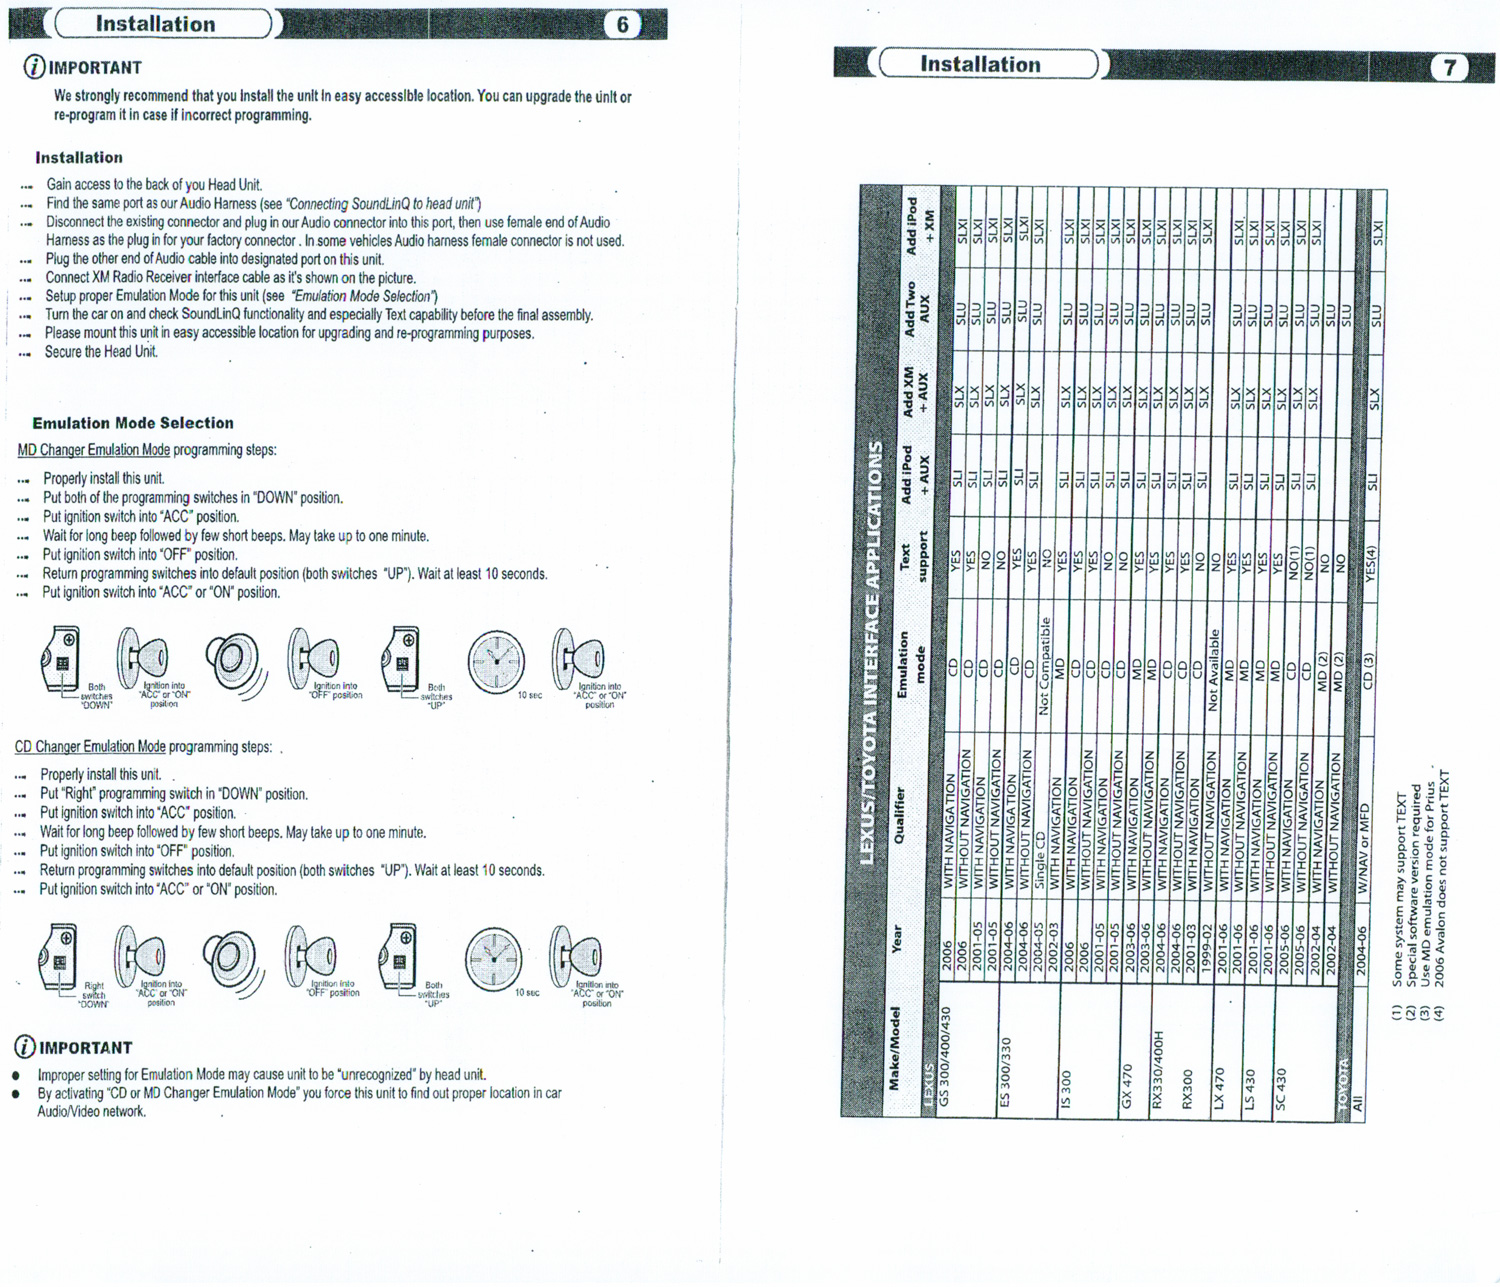 2004 Lexus Is300 Radio Wiring Diagram